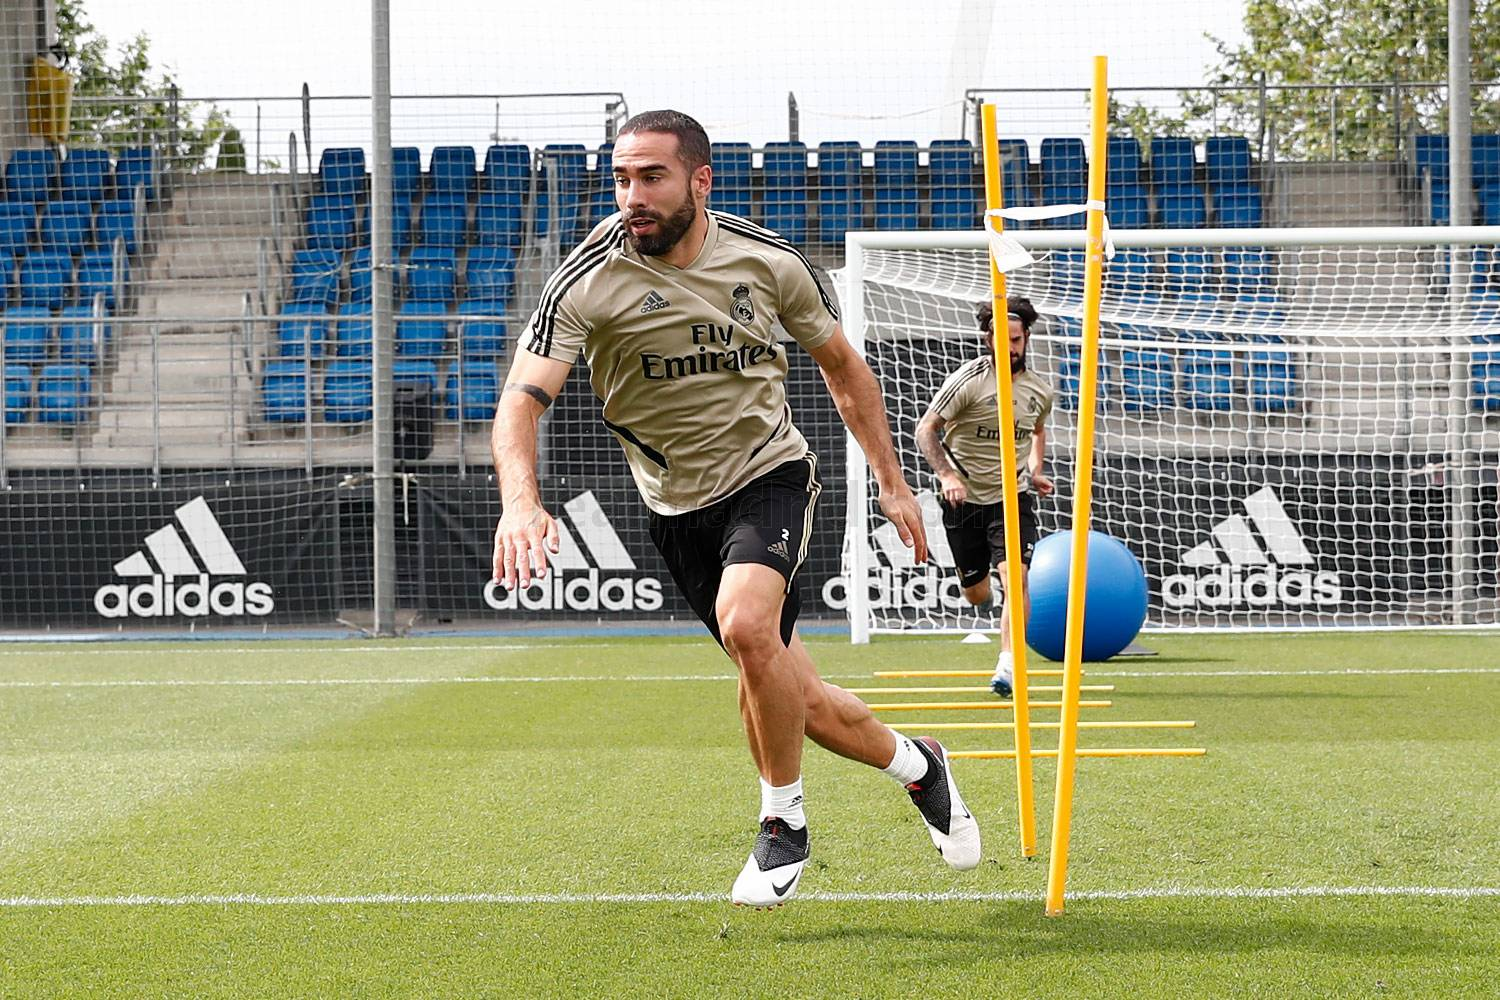 Real Madrid - Entrenamiento del Real Madrid  - 26-05-2020